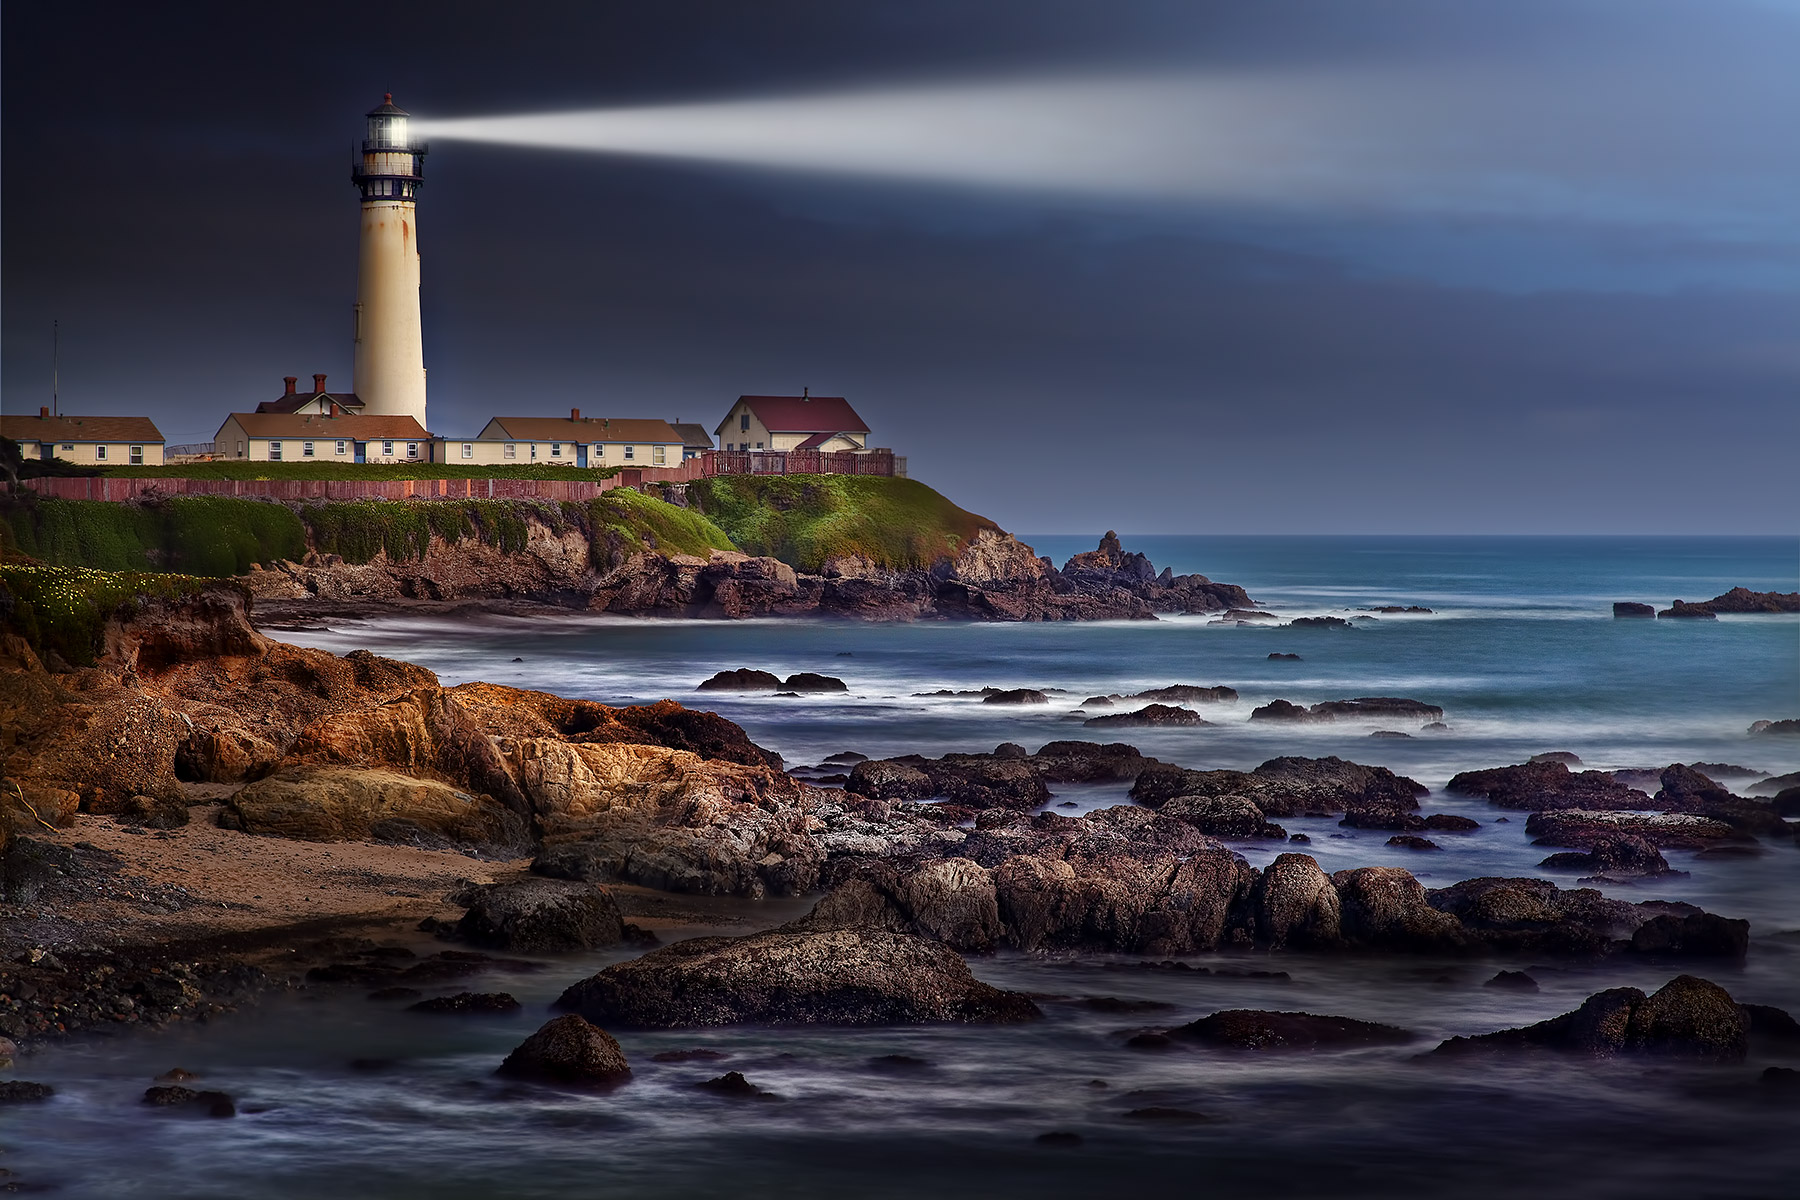 Lighthouse with beam California Coast| Dovis Bird Agency Reps